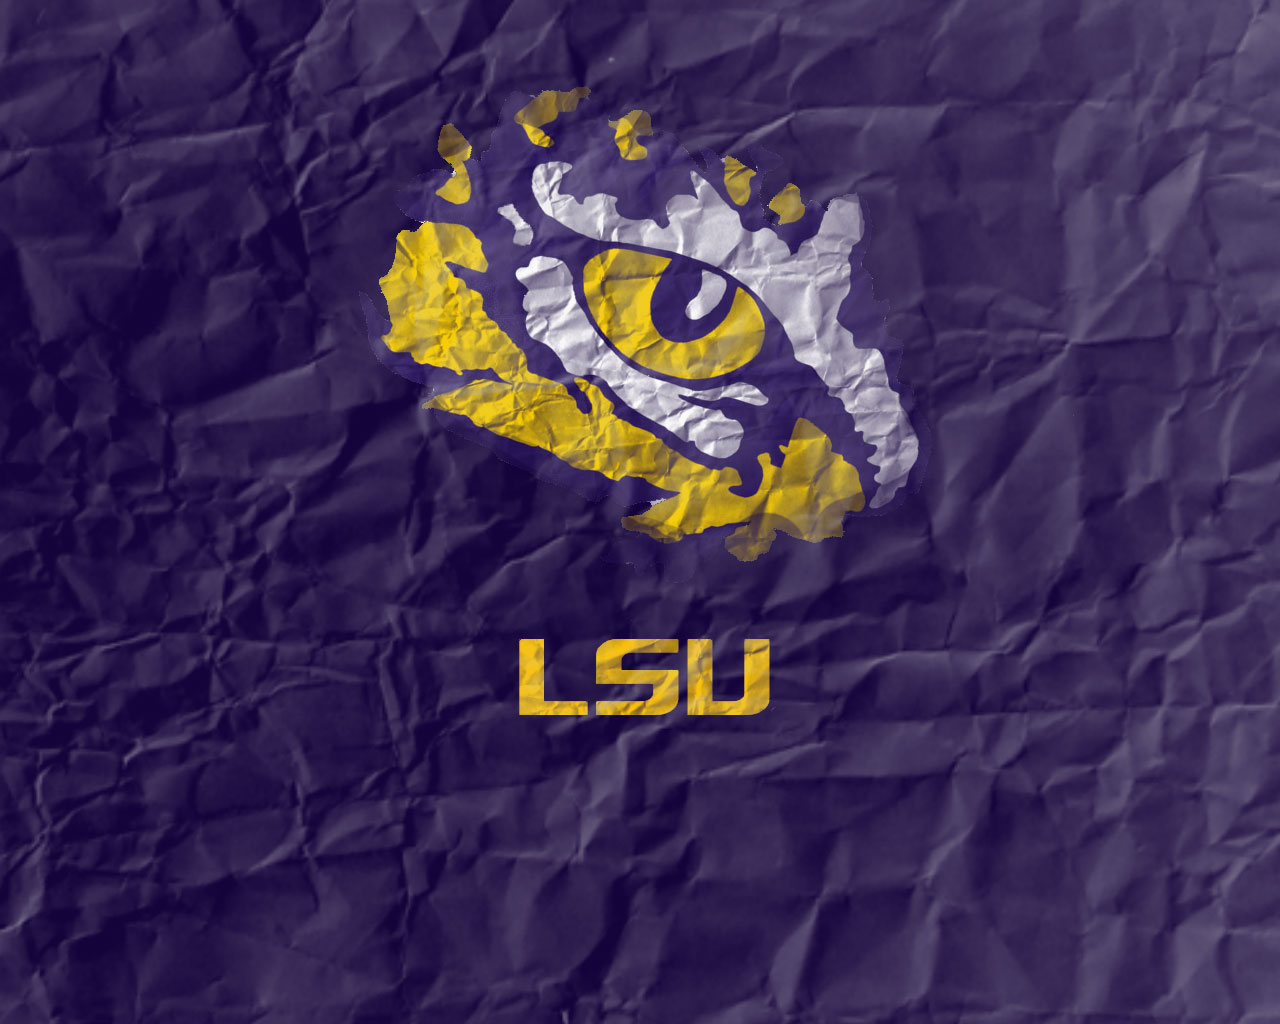 LSU Eye Of The Tiger Wallpaper Hd For Samsung Galaxy S4 cute 1280x1024